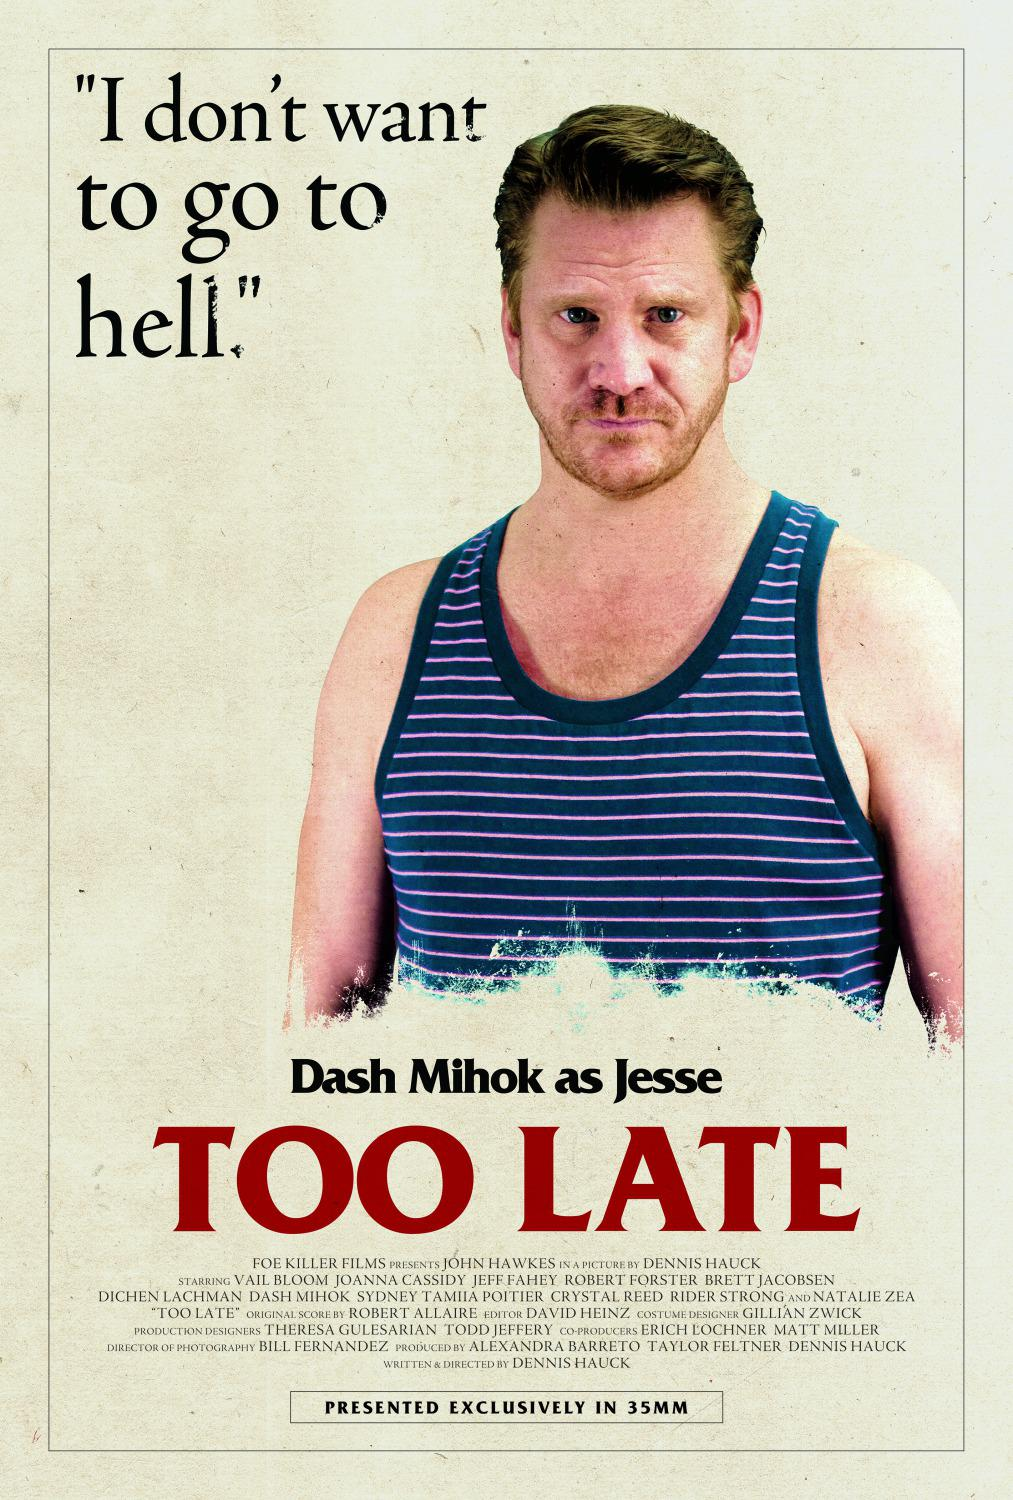 Troppo Tardi - Too Late - Dash Mihok as Jesse